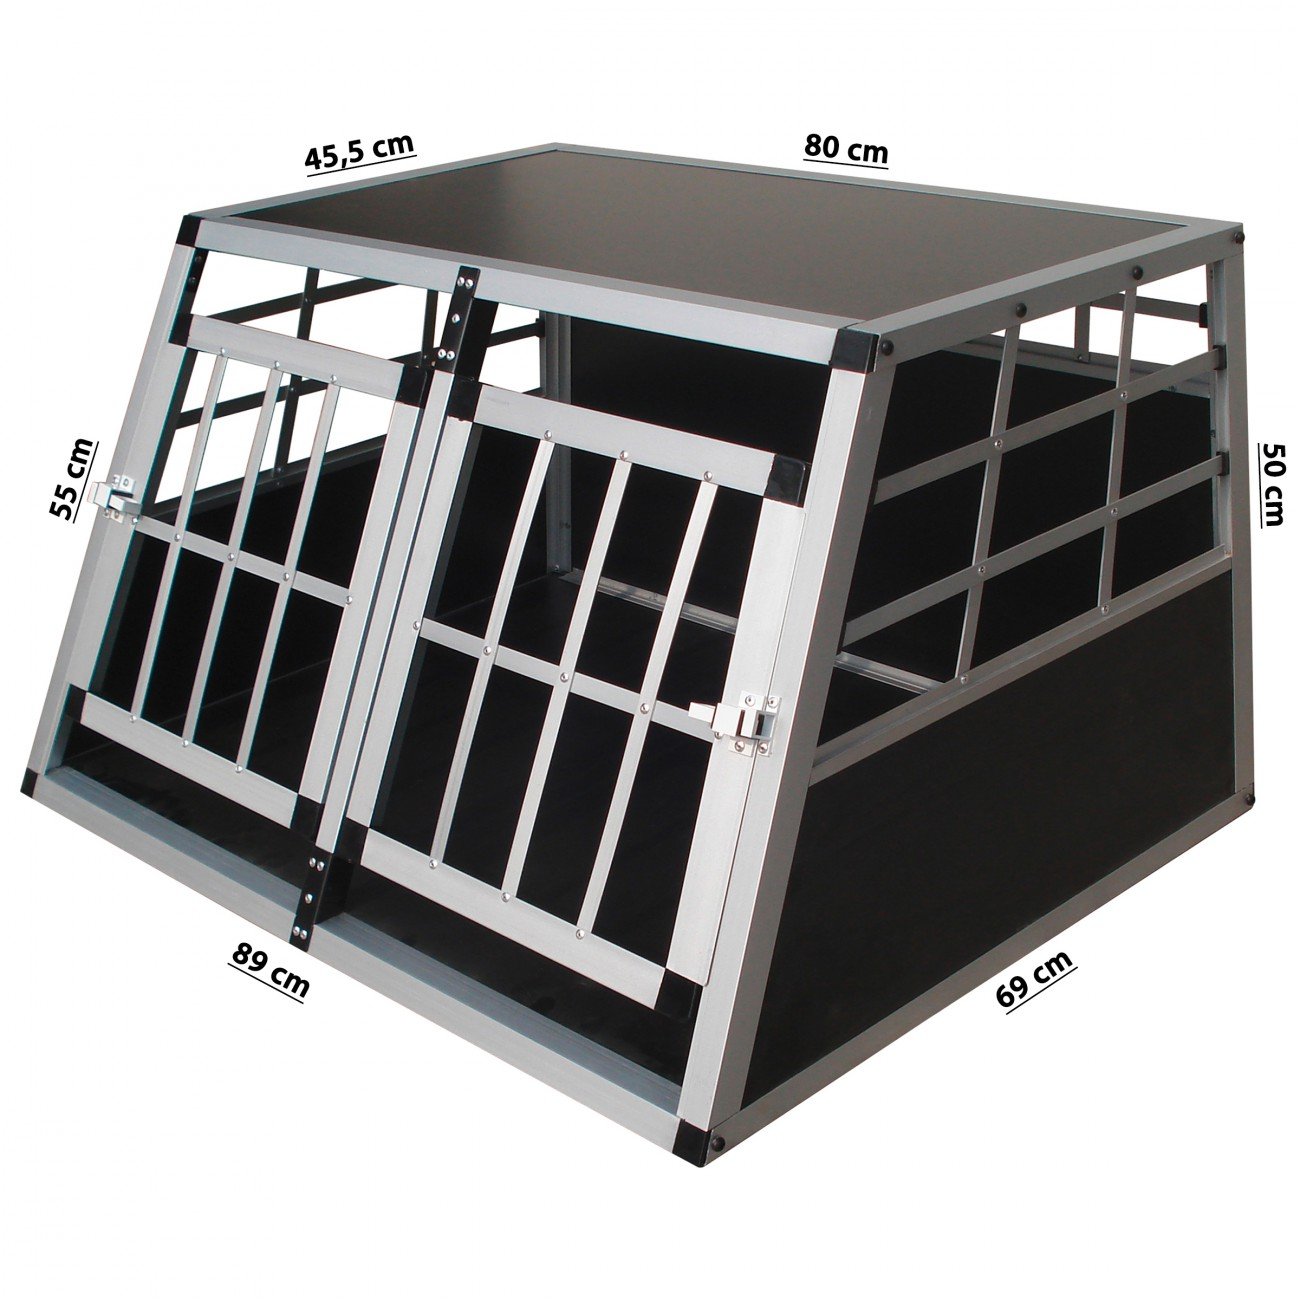 cage de transport pour chien caisse boite de transport. Black Bedroom Furniture Sets. Home Design Ideas